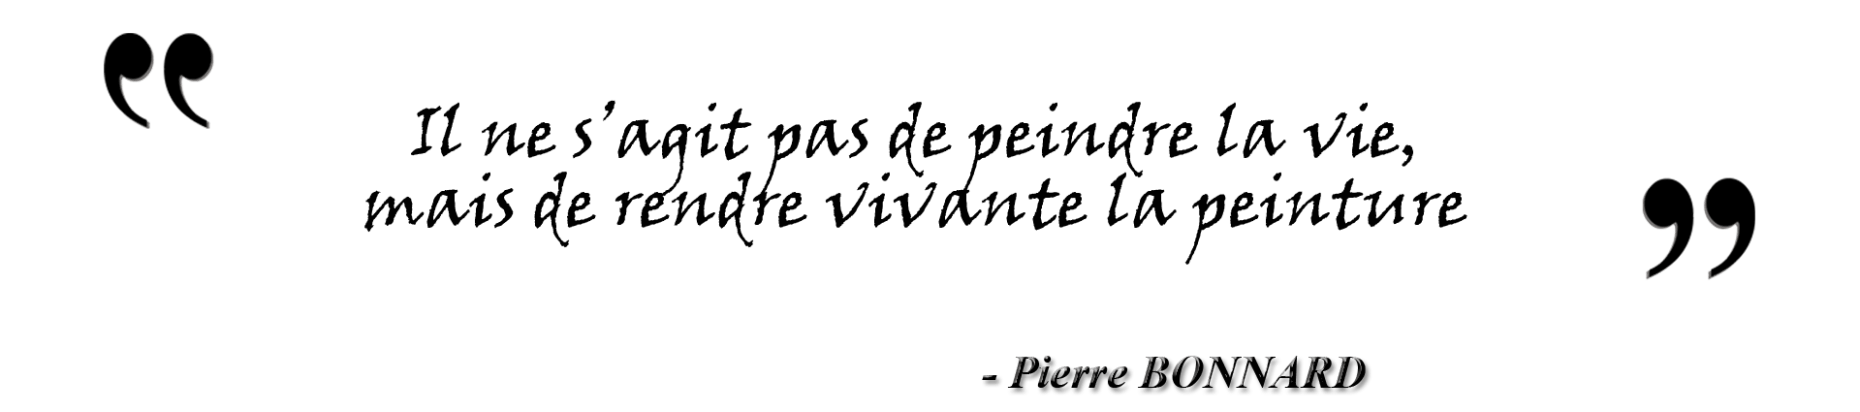 Citation de Pierre Bonnard